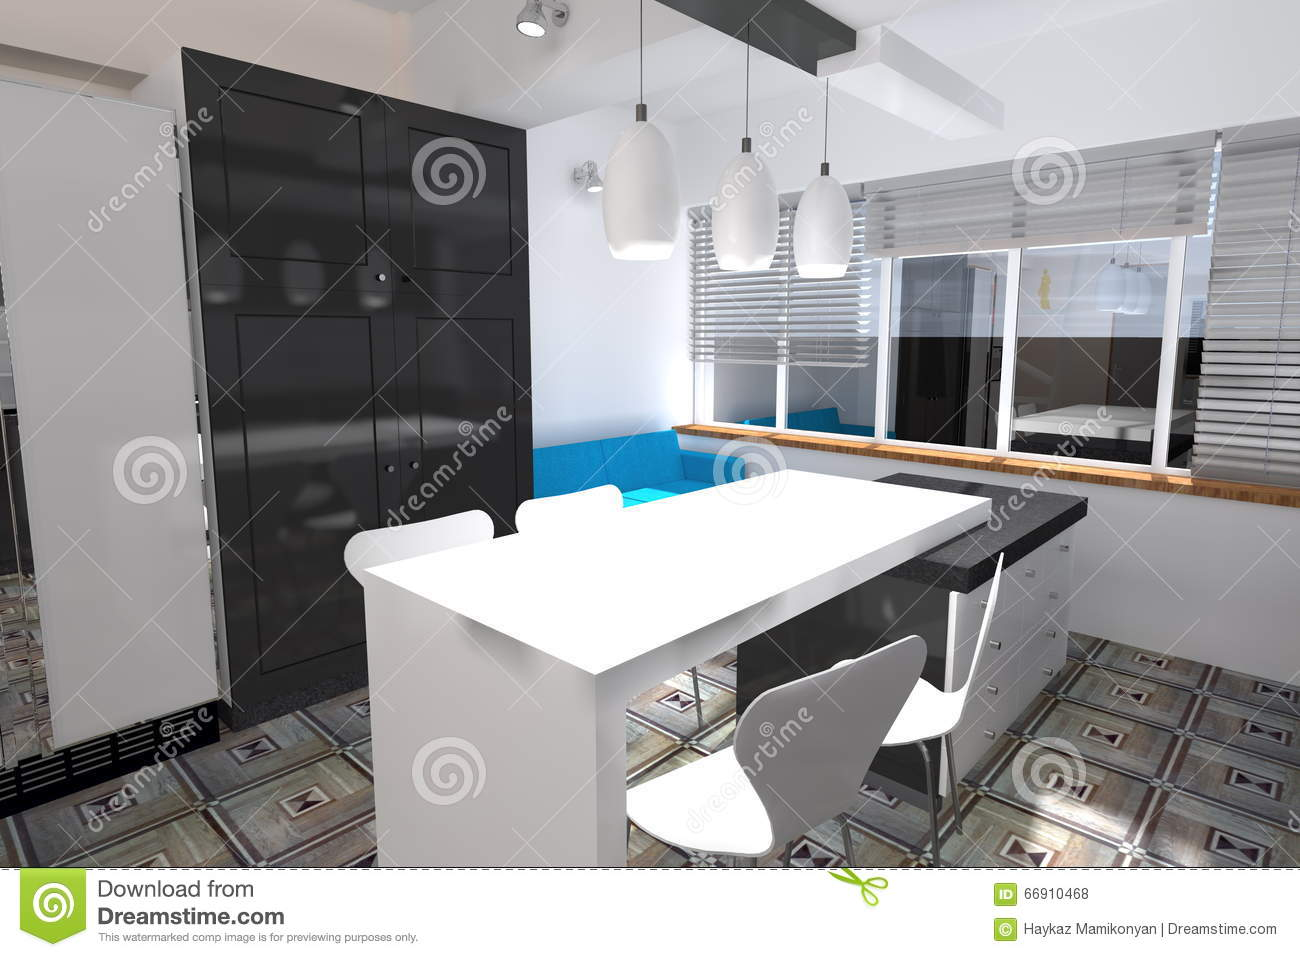 Kitchen design stock illustration. Illustration of adobe - 66910468